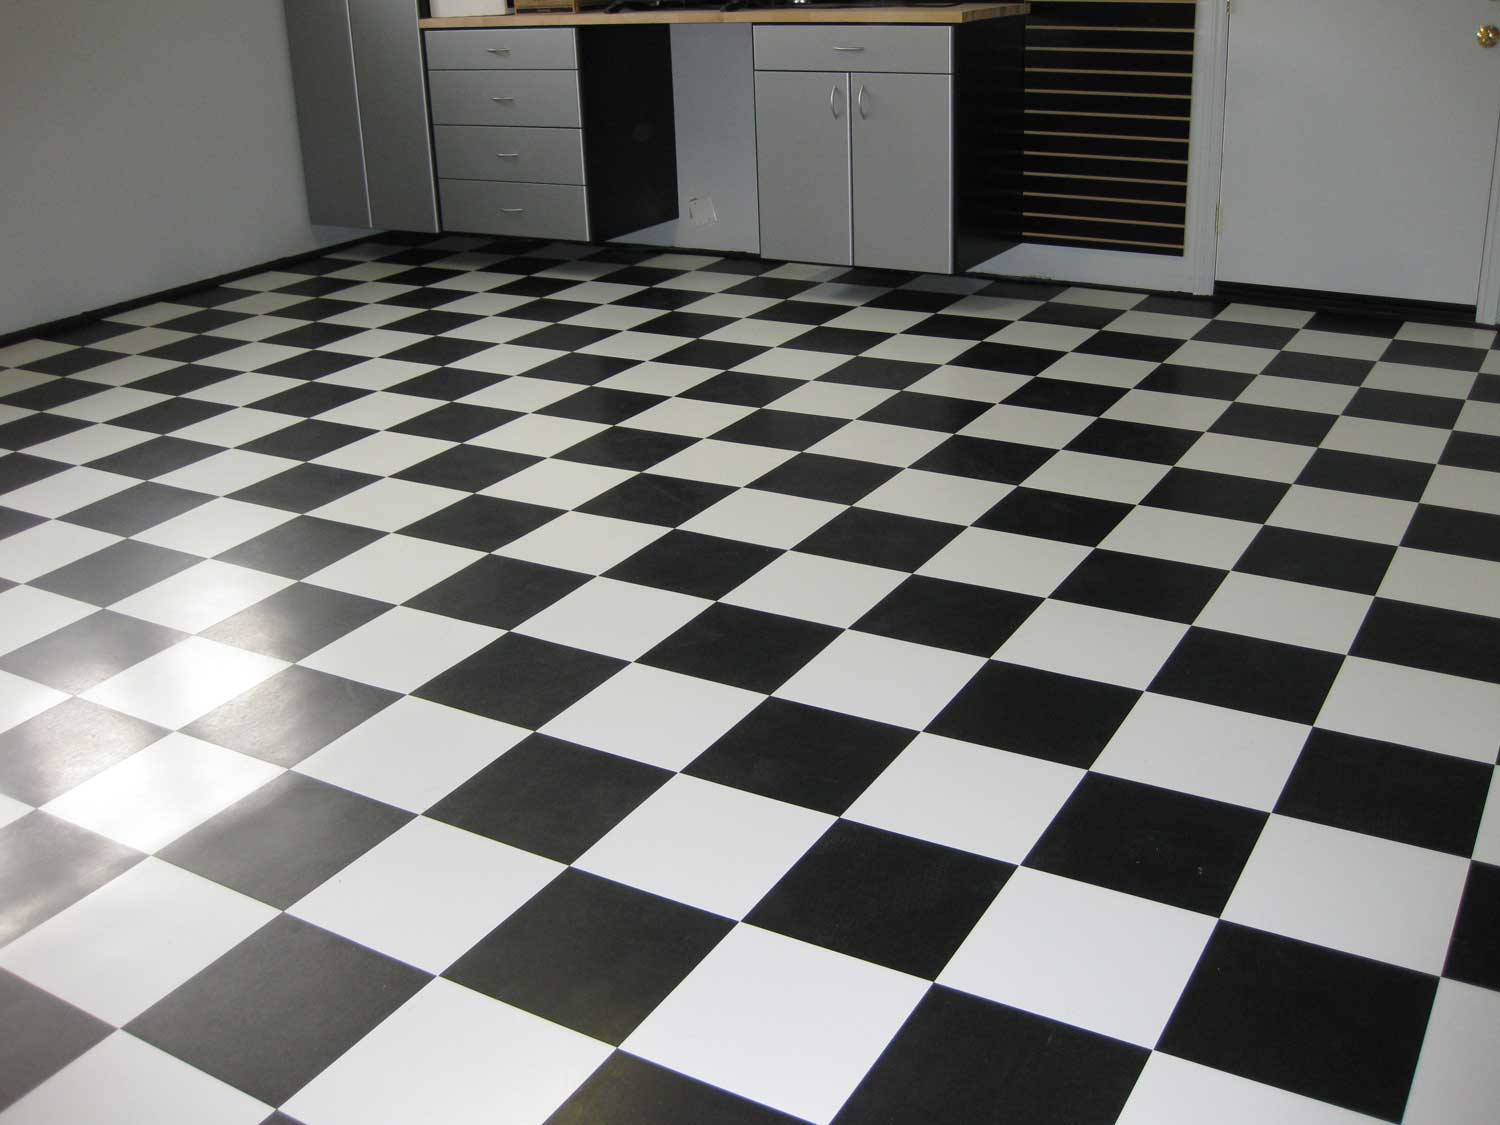 Black And White Tile Kitchen Floor Design Modern Pictures To Pin On